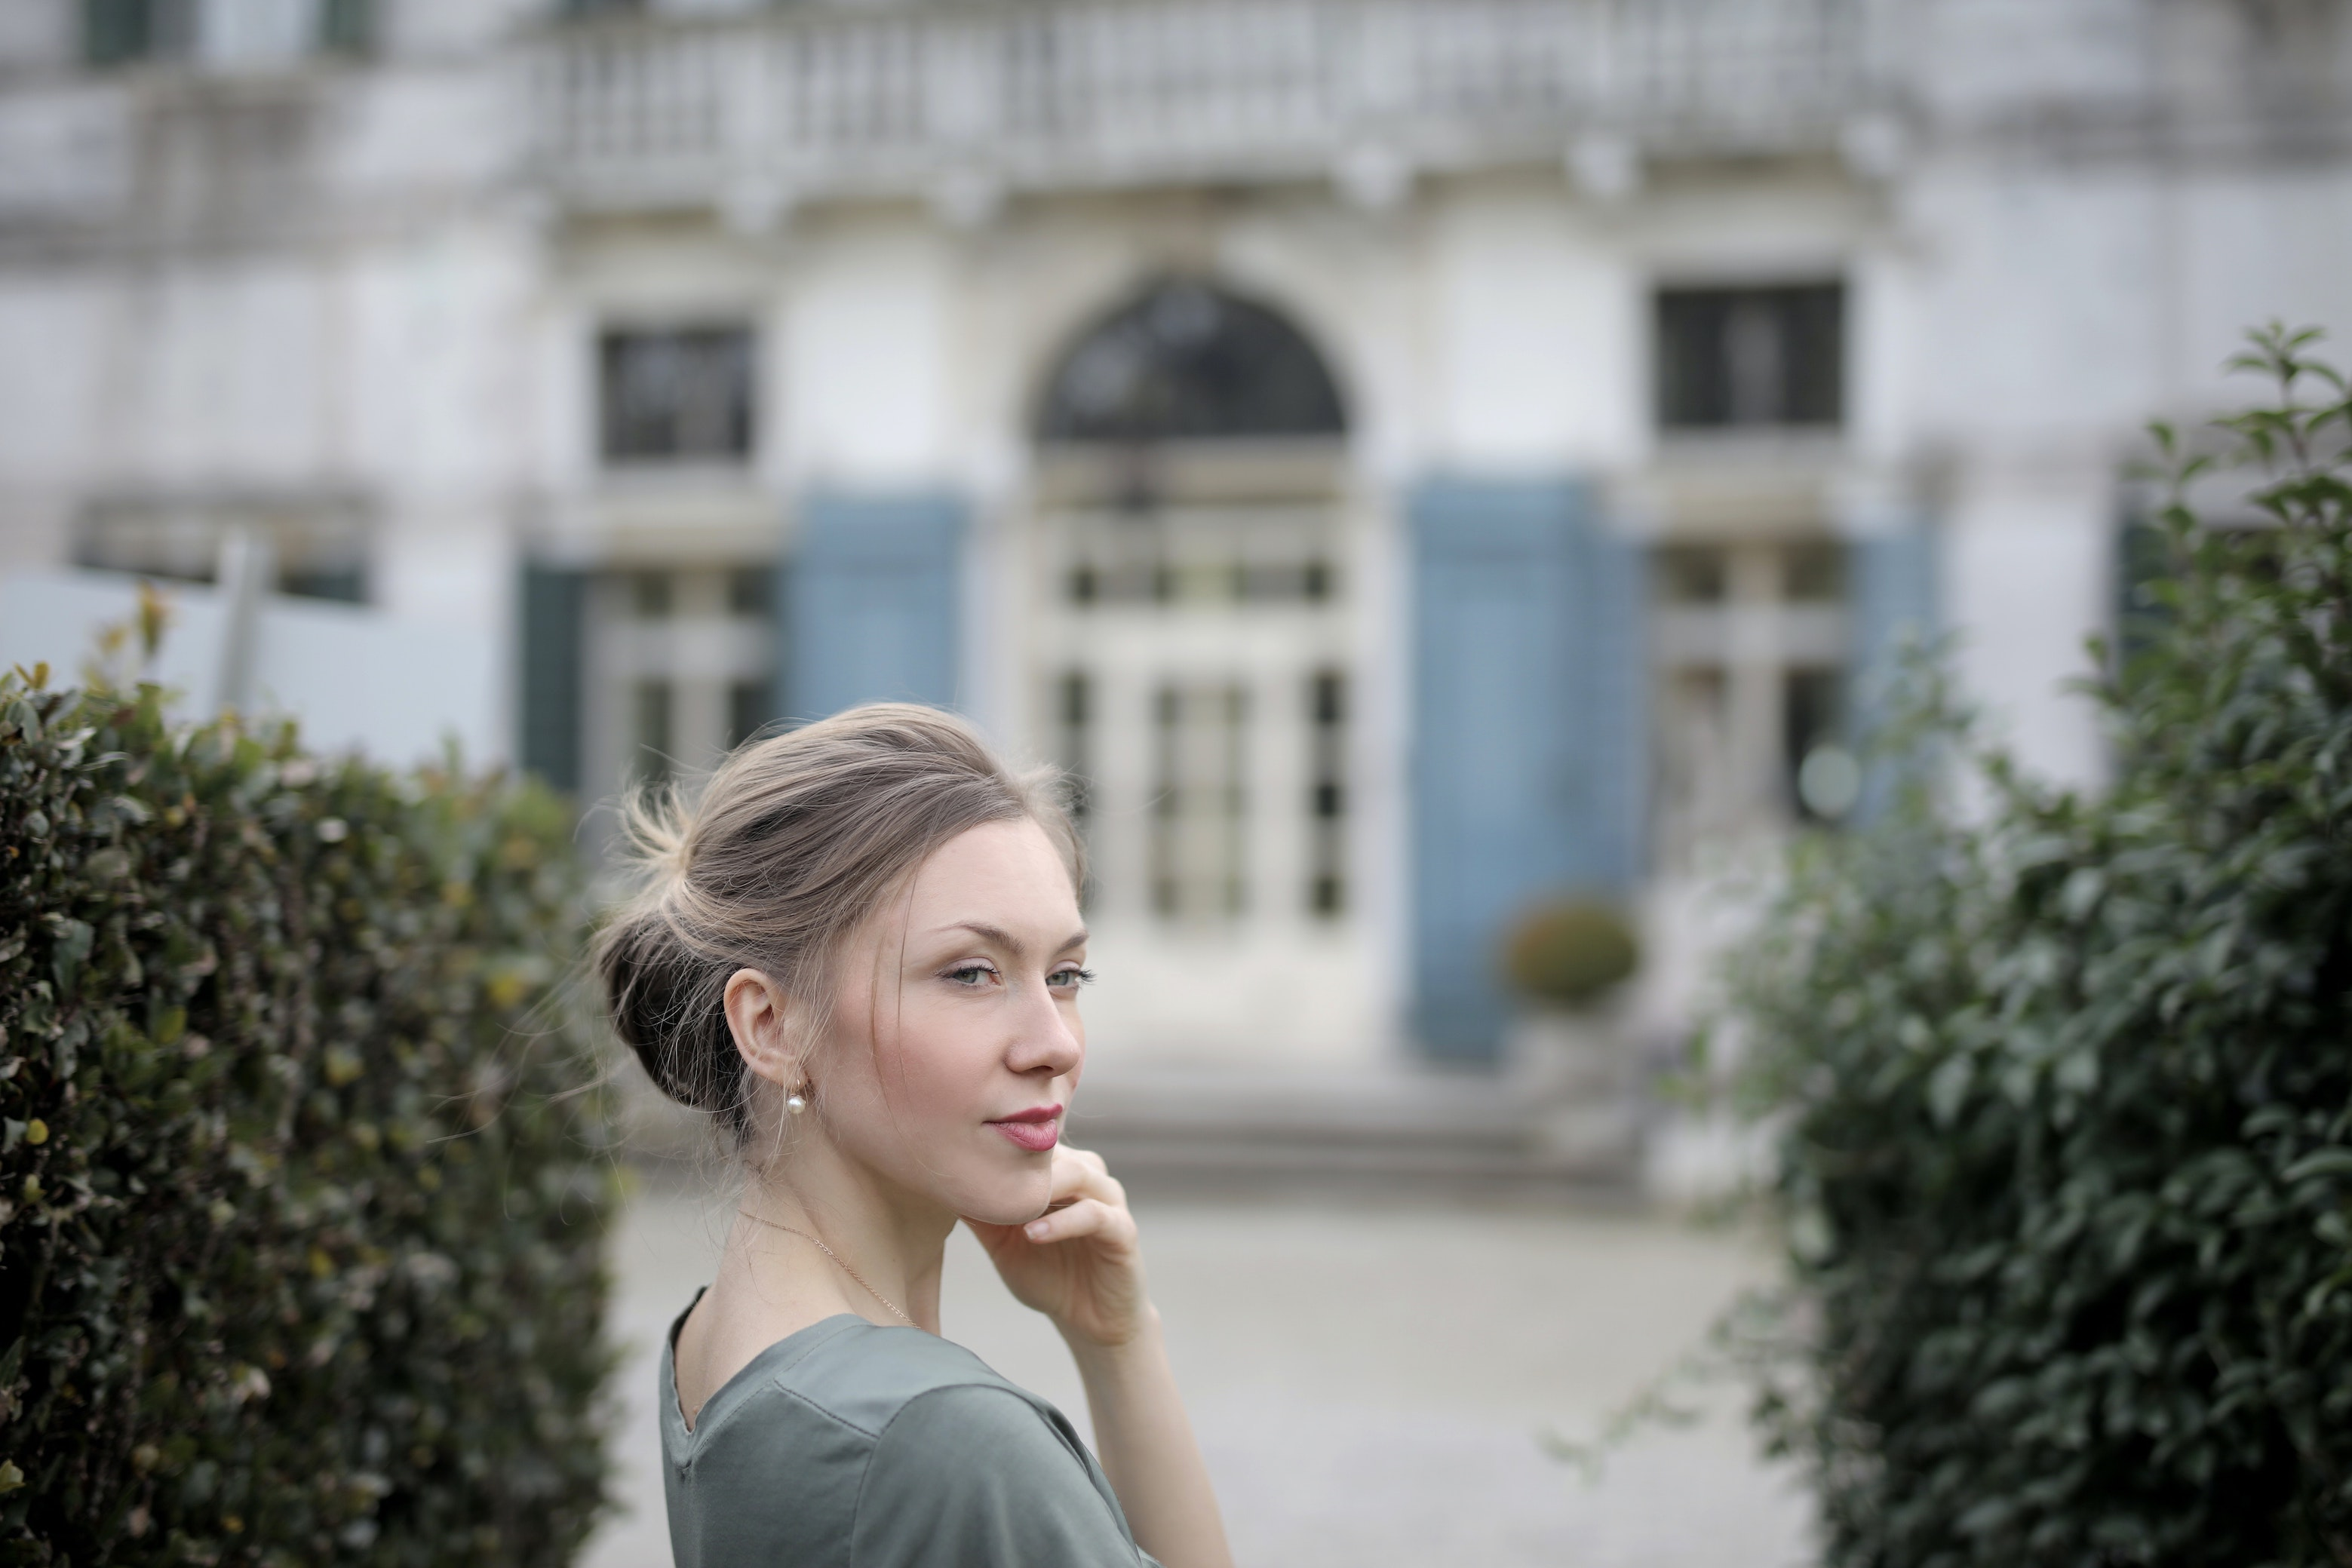 pensive-woman-on-background-of-old-palace-among-plants-3831034